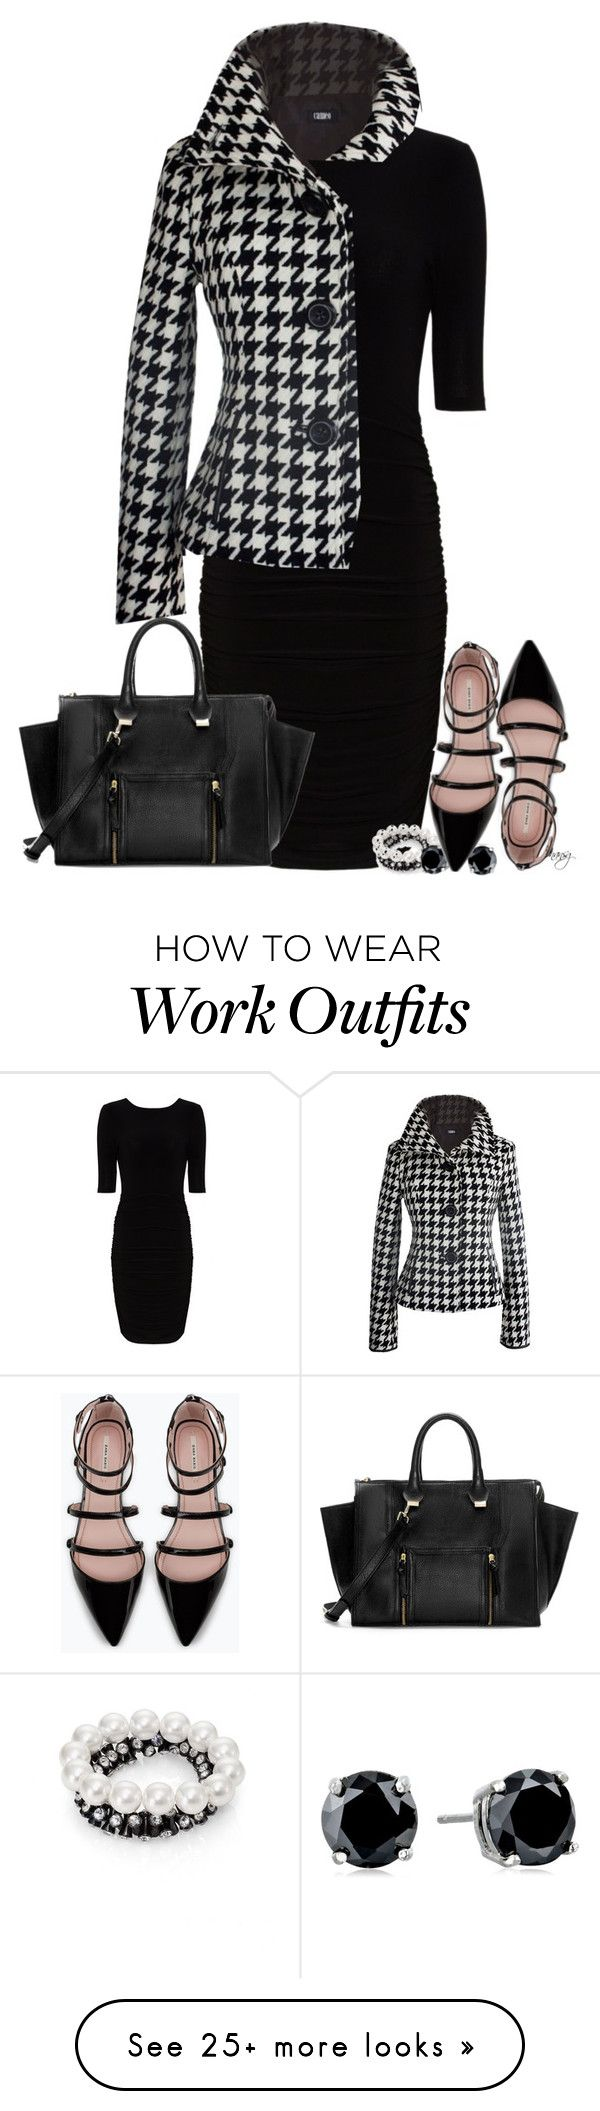 """Fall Flat"" by nansg on Polyvore featuring moda, Alice + Olivia, Zara, Kenneth Jay Lane ve CZ by Kenneth Jay Lane"